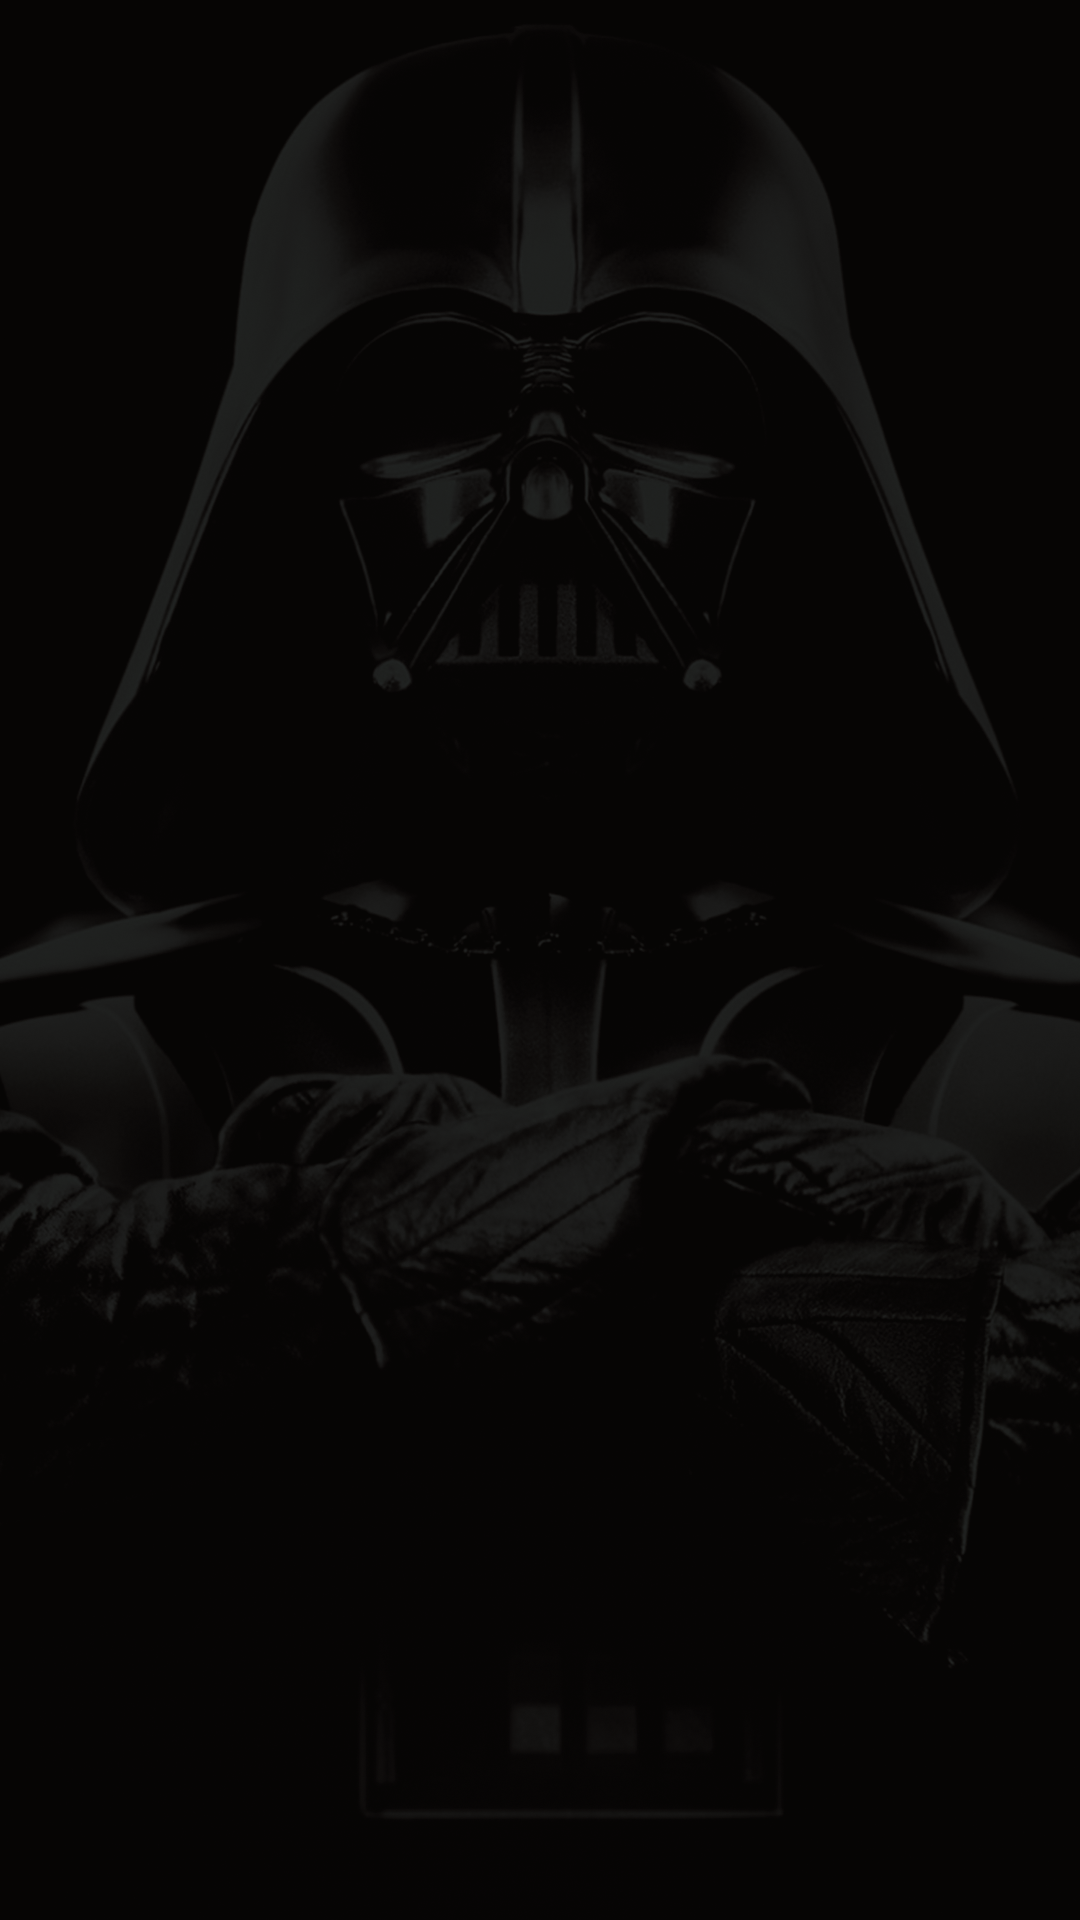 Ultra Hd Darth Vader Black Wallpaper For Your Mobile Phone 0084